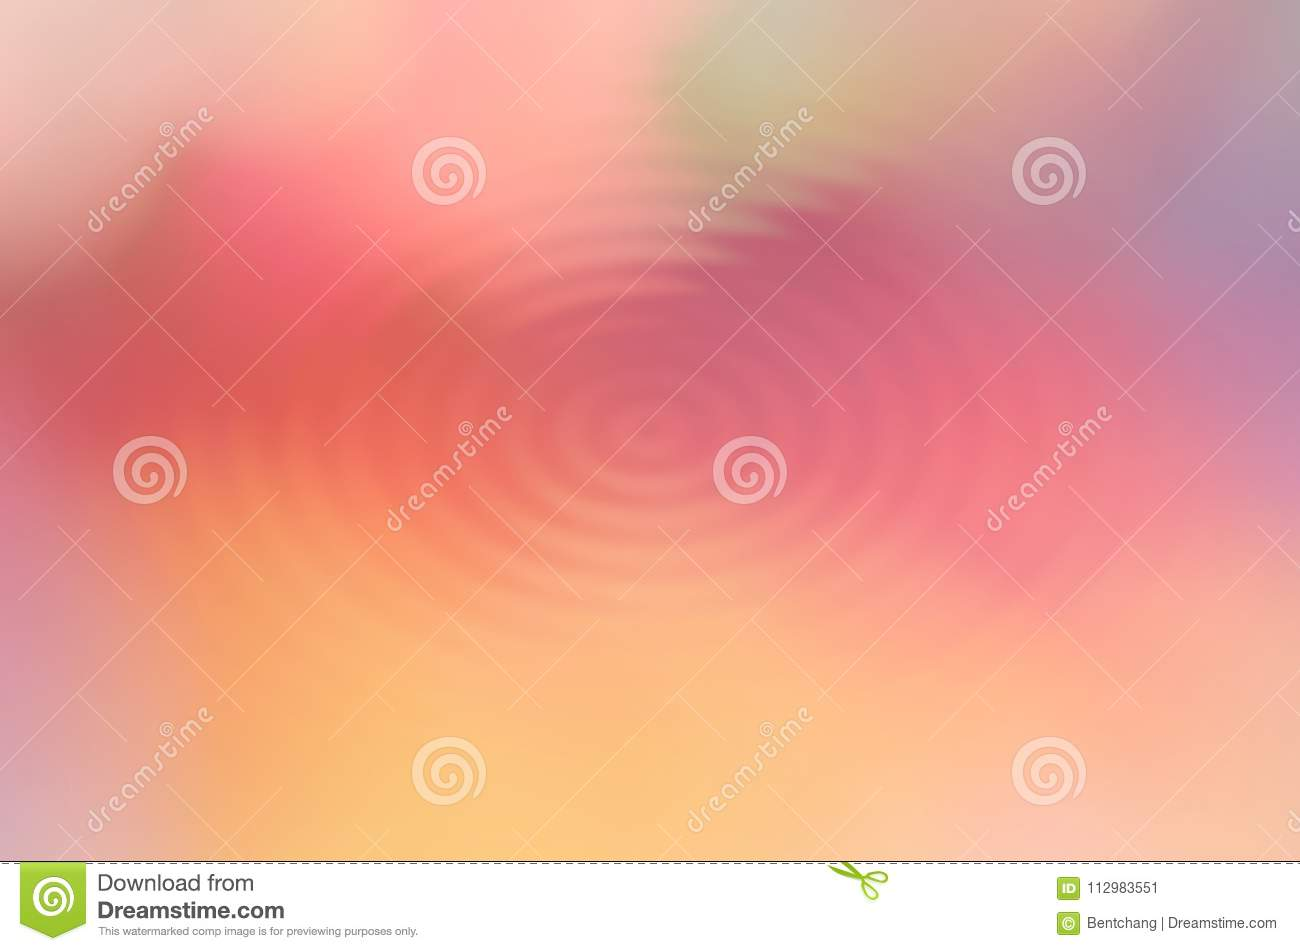 Abstract motion generative design art background. Blur, artwork, red, beauty & yellow.